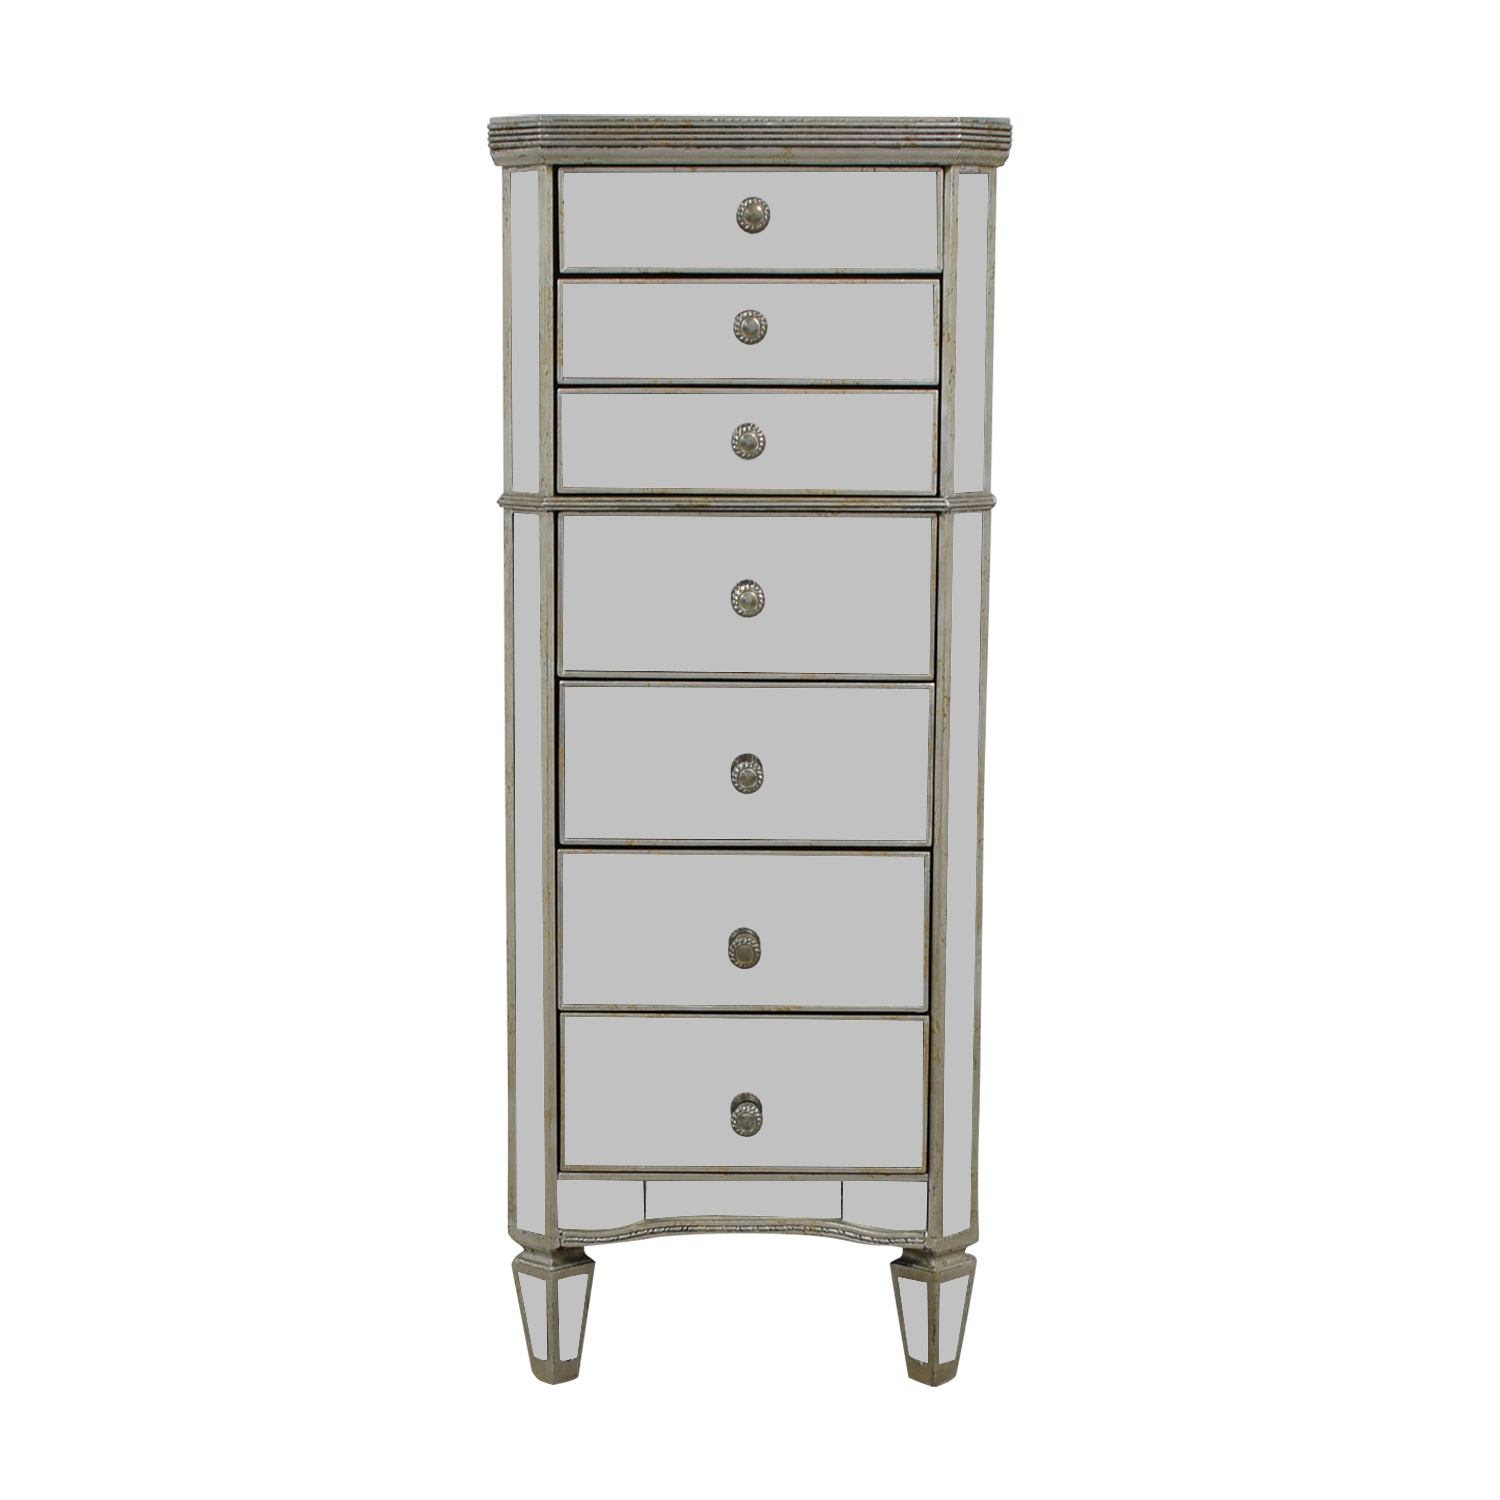 Seven-Drawer Mirrored Tall Dresser nyc